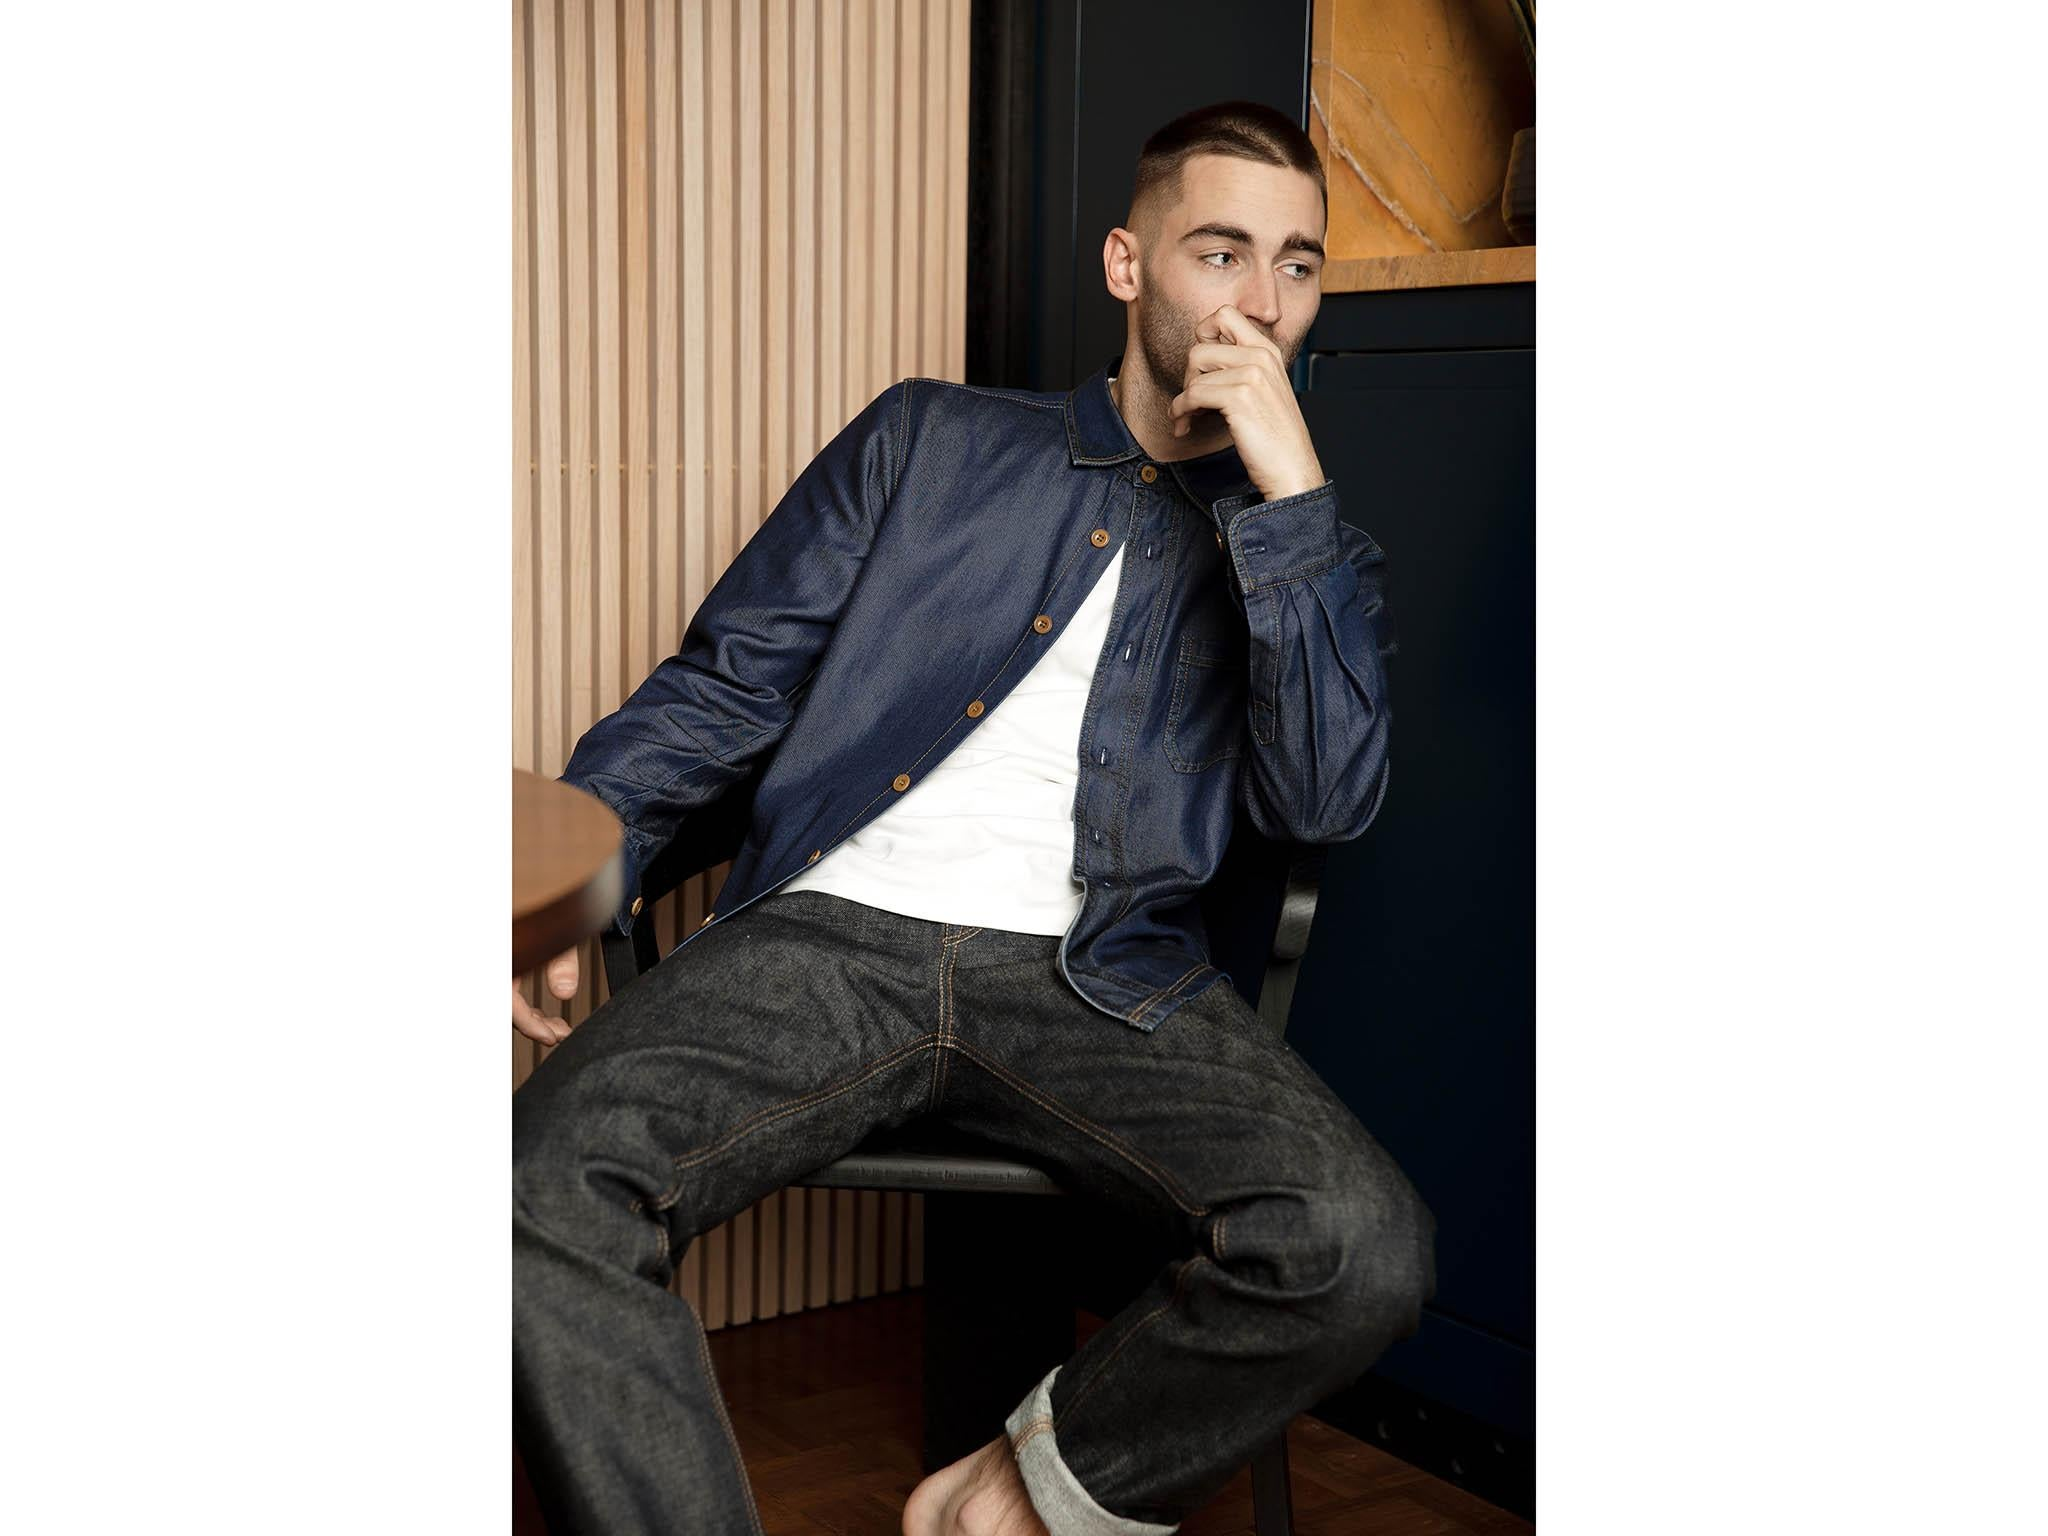 fff3cf821057d1 13 best sustainable men's clothing brands that don't compromise on style    The Independent